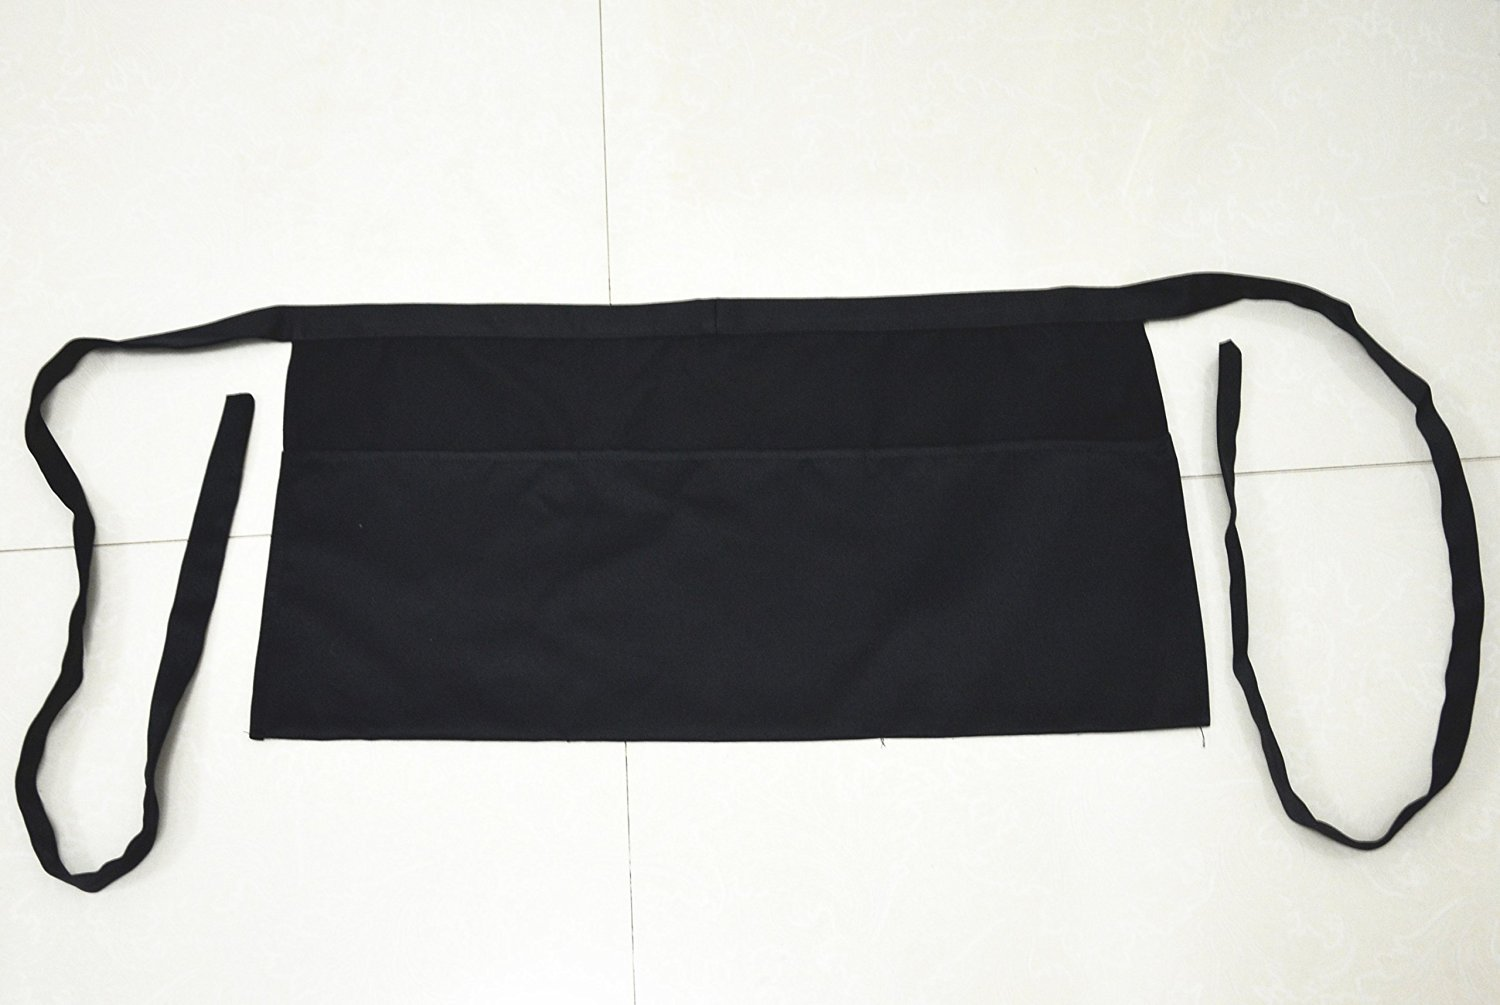 Ulove Prs New 3 Pockets Waist Apron (SET of 2, Black, 24x12 inches) - Durable, Comfortable, Easy Care, Restaurant Half Aprons.